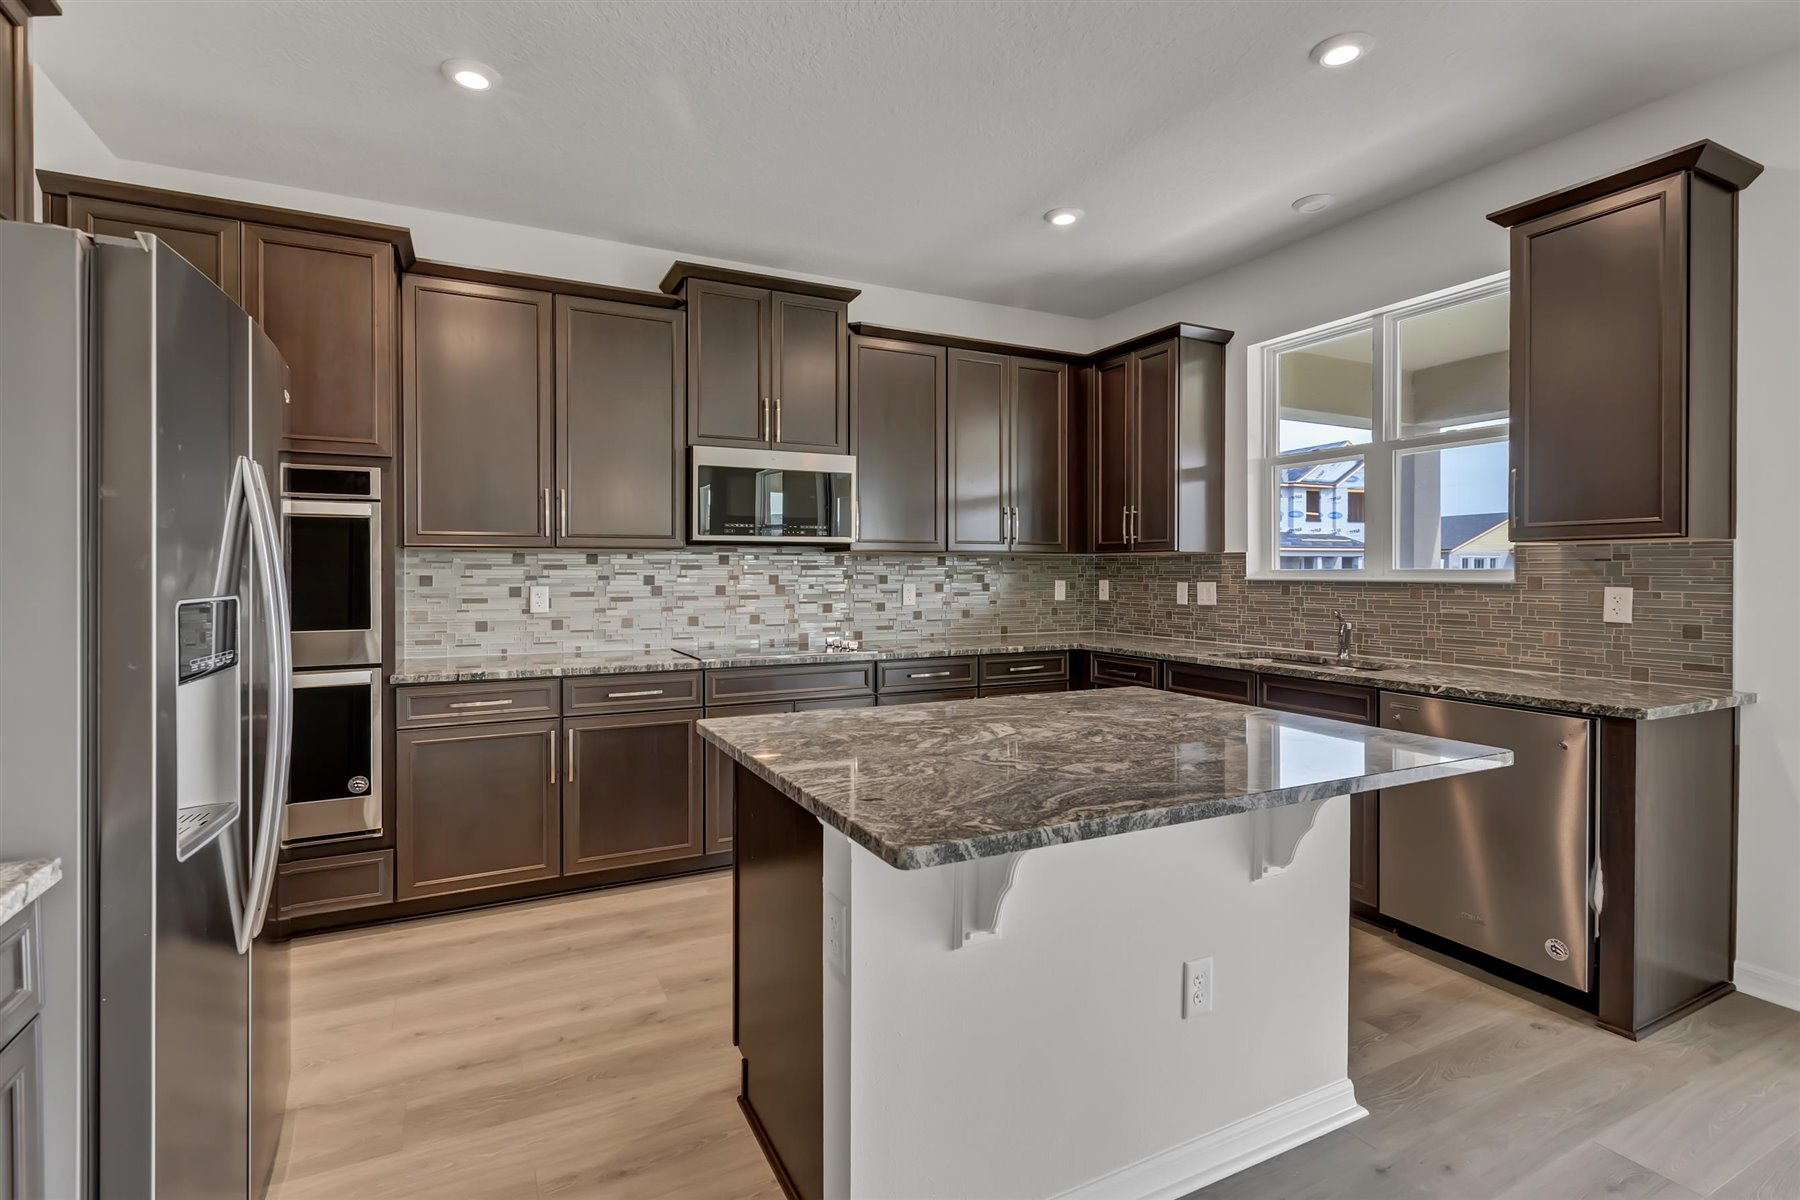 Winthrop Plan Kitchen at Meridian Parks in Orlando Florida by Mattamy Homes